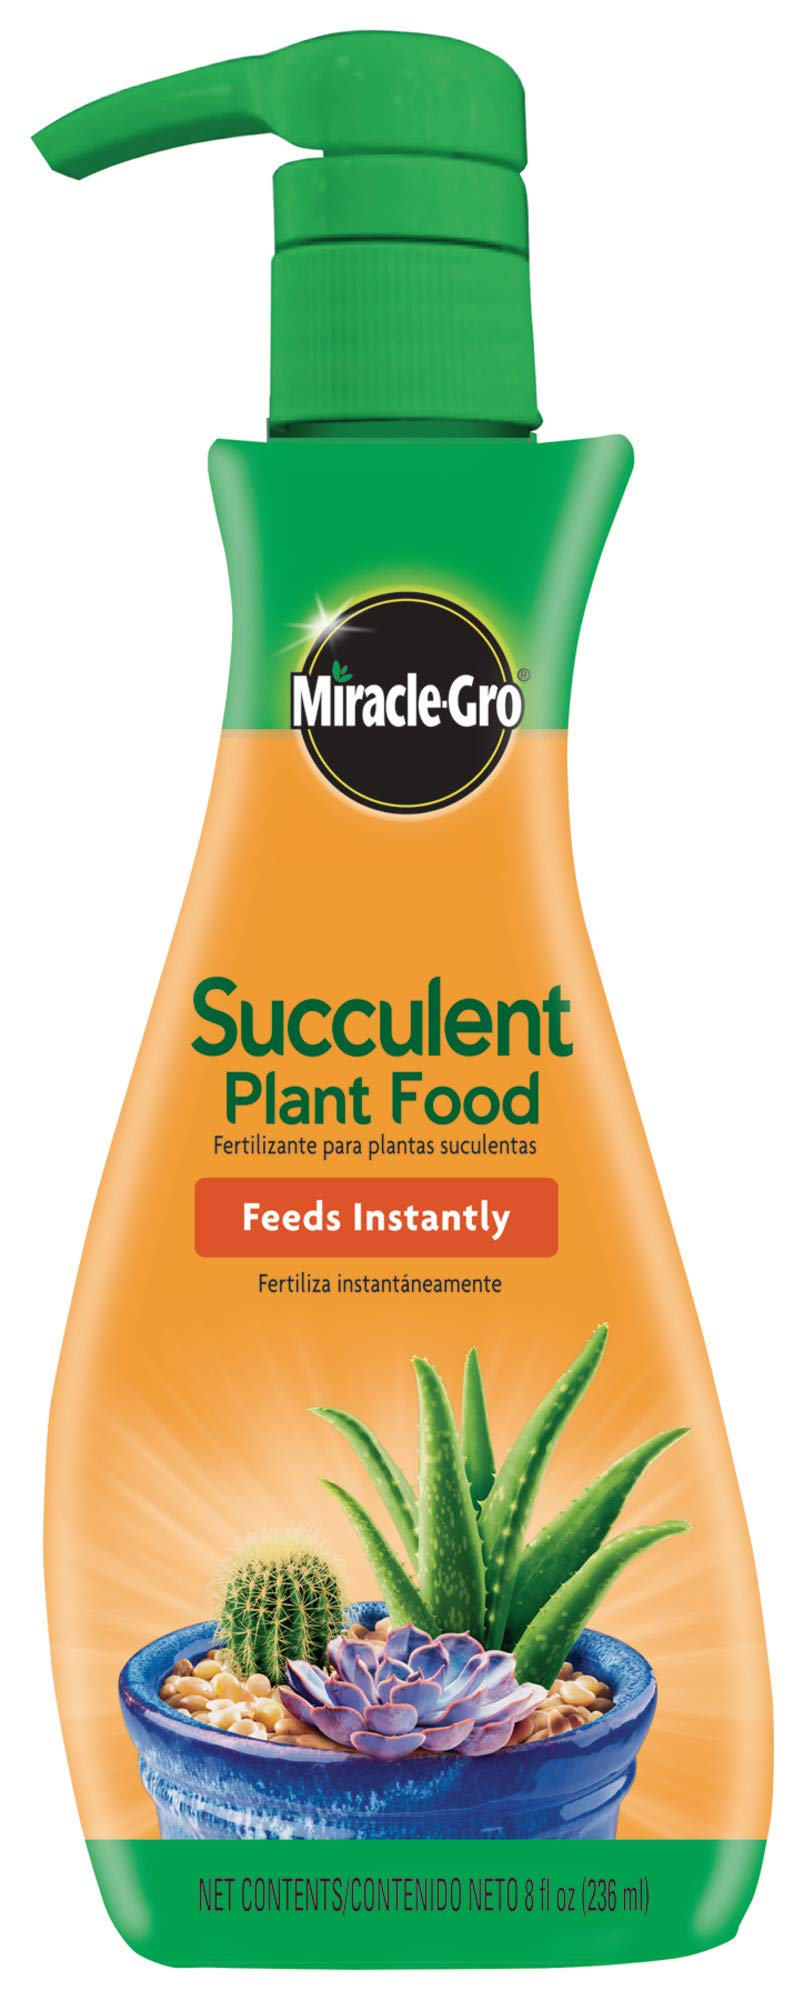 Miracle-Gro Succulent Plant Food, 8 Oz., For Succulents including Cacti, Jade, And Aloe, 1 Pack